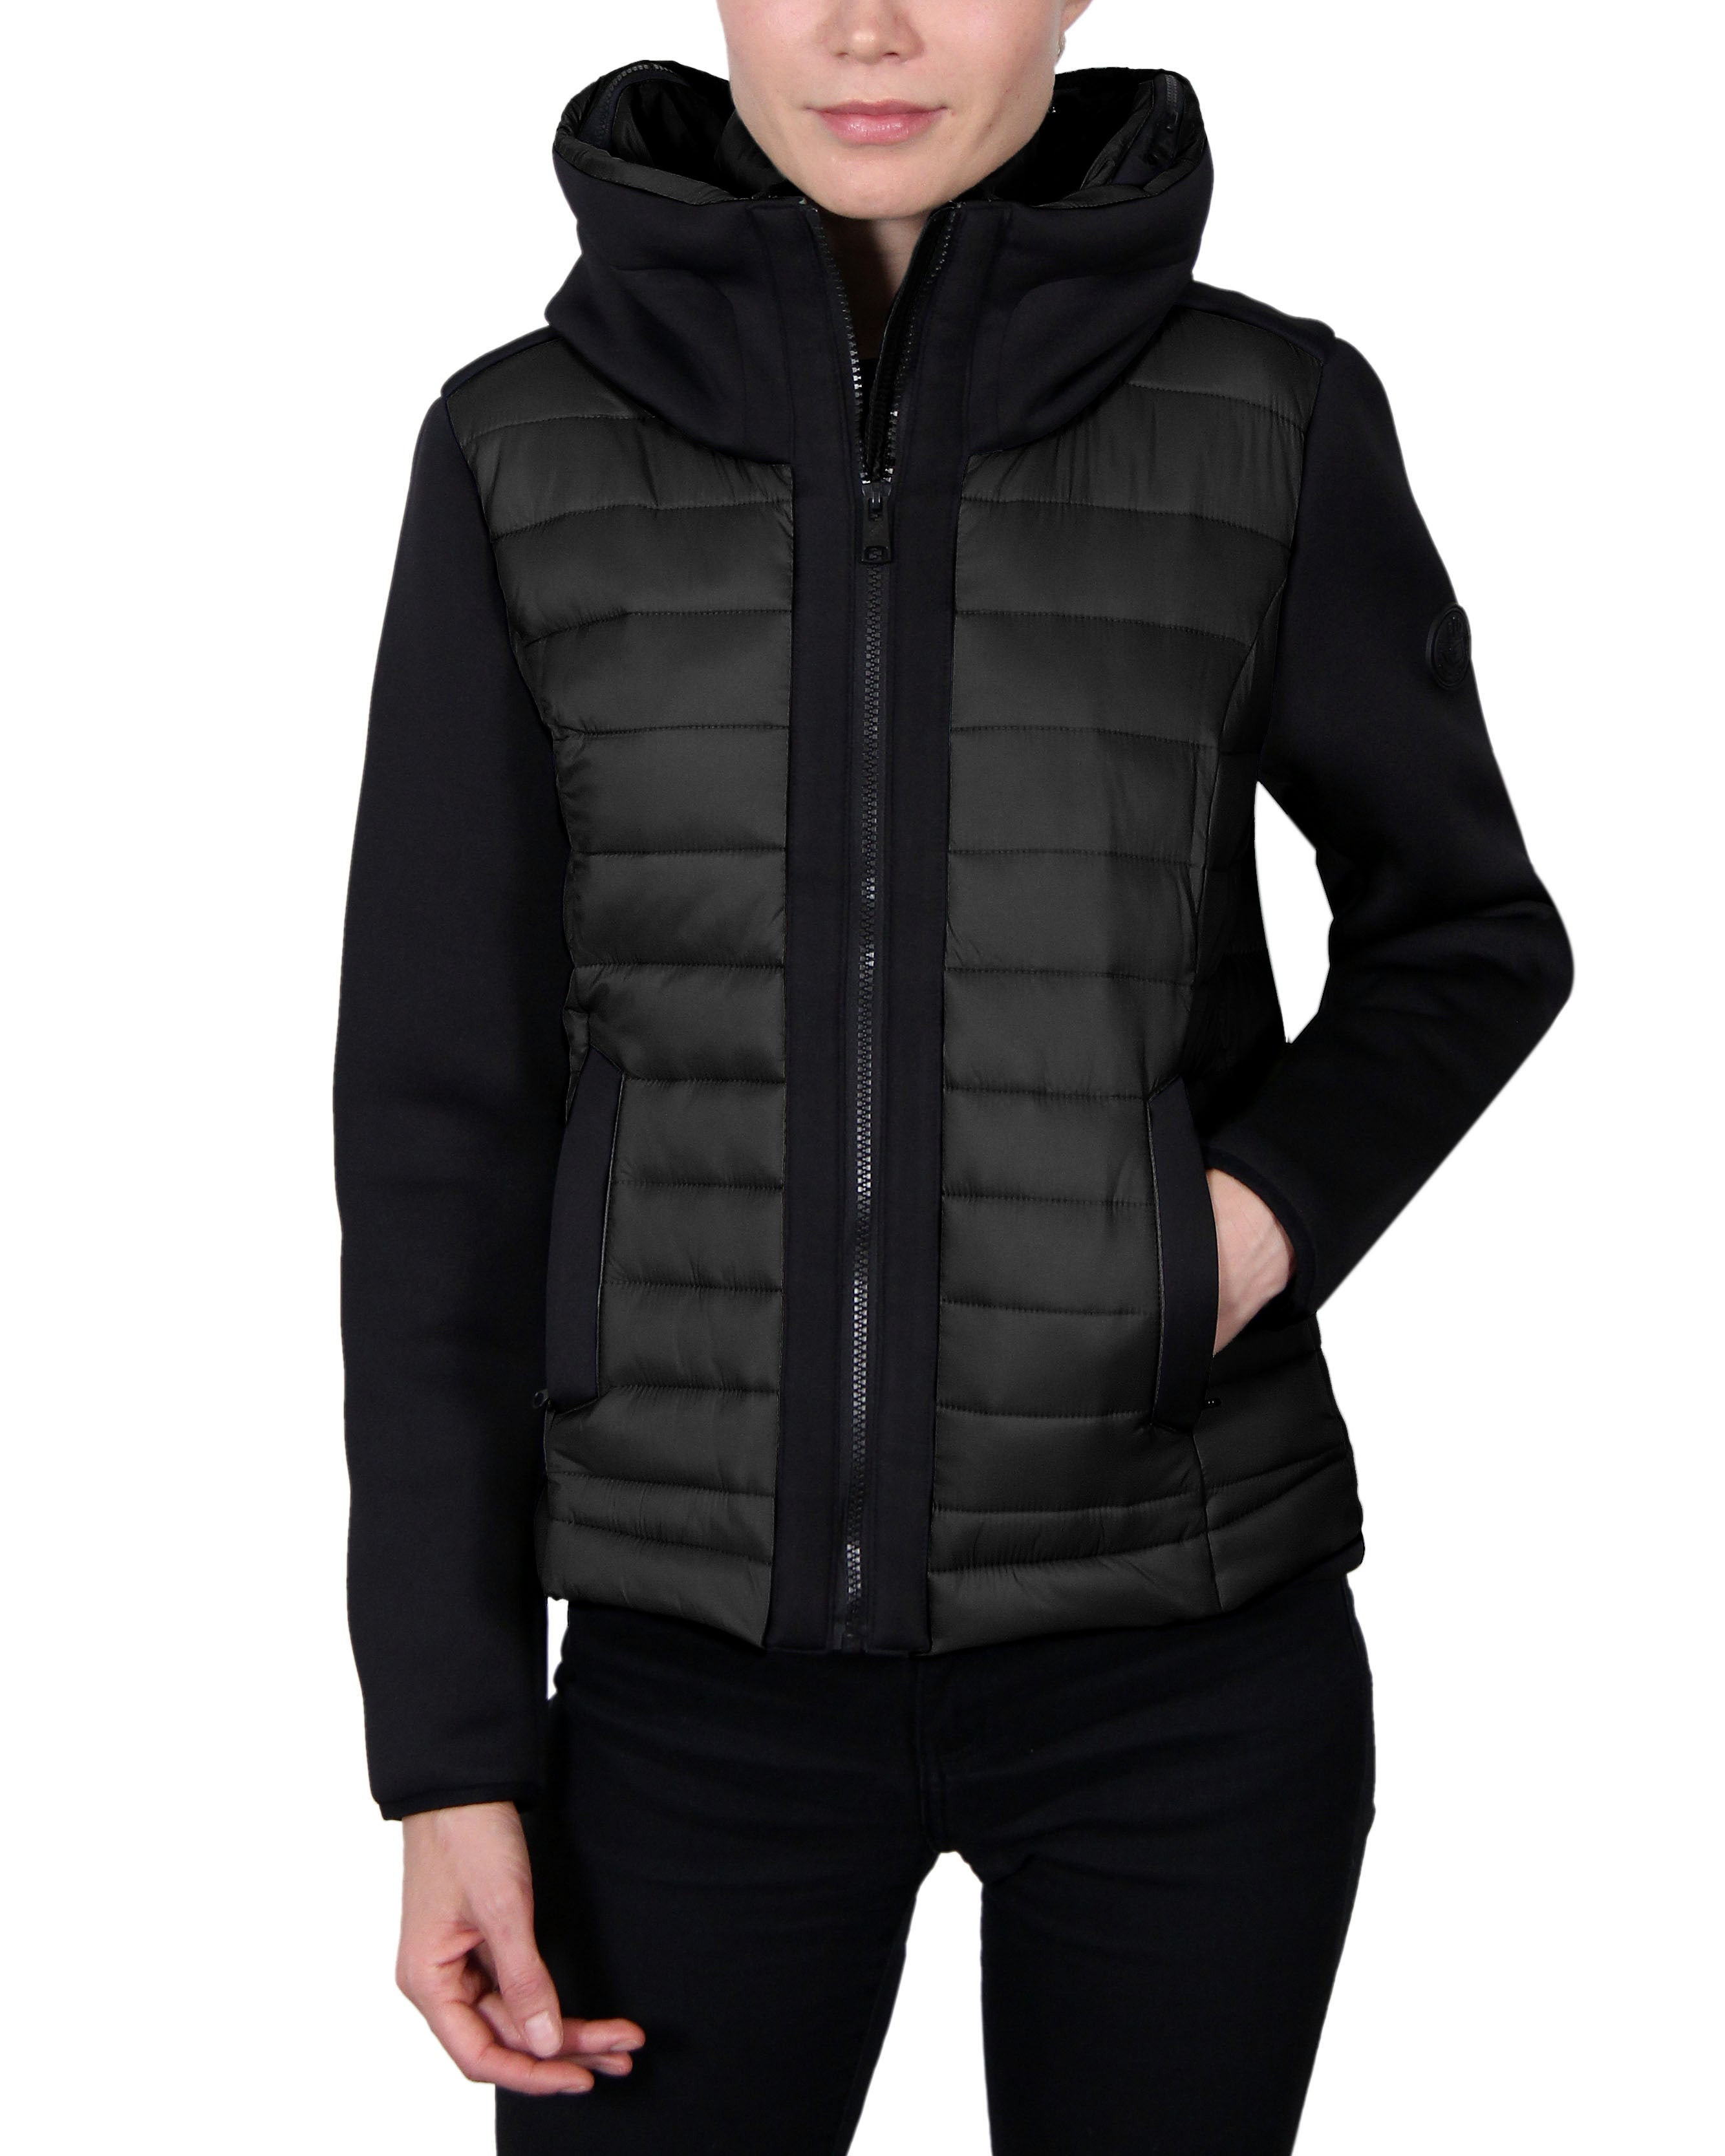 Women's Scuba-Stretch Hybrid Jacket - Black